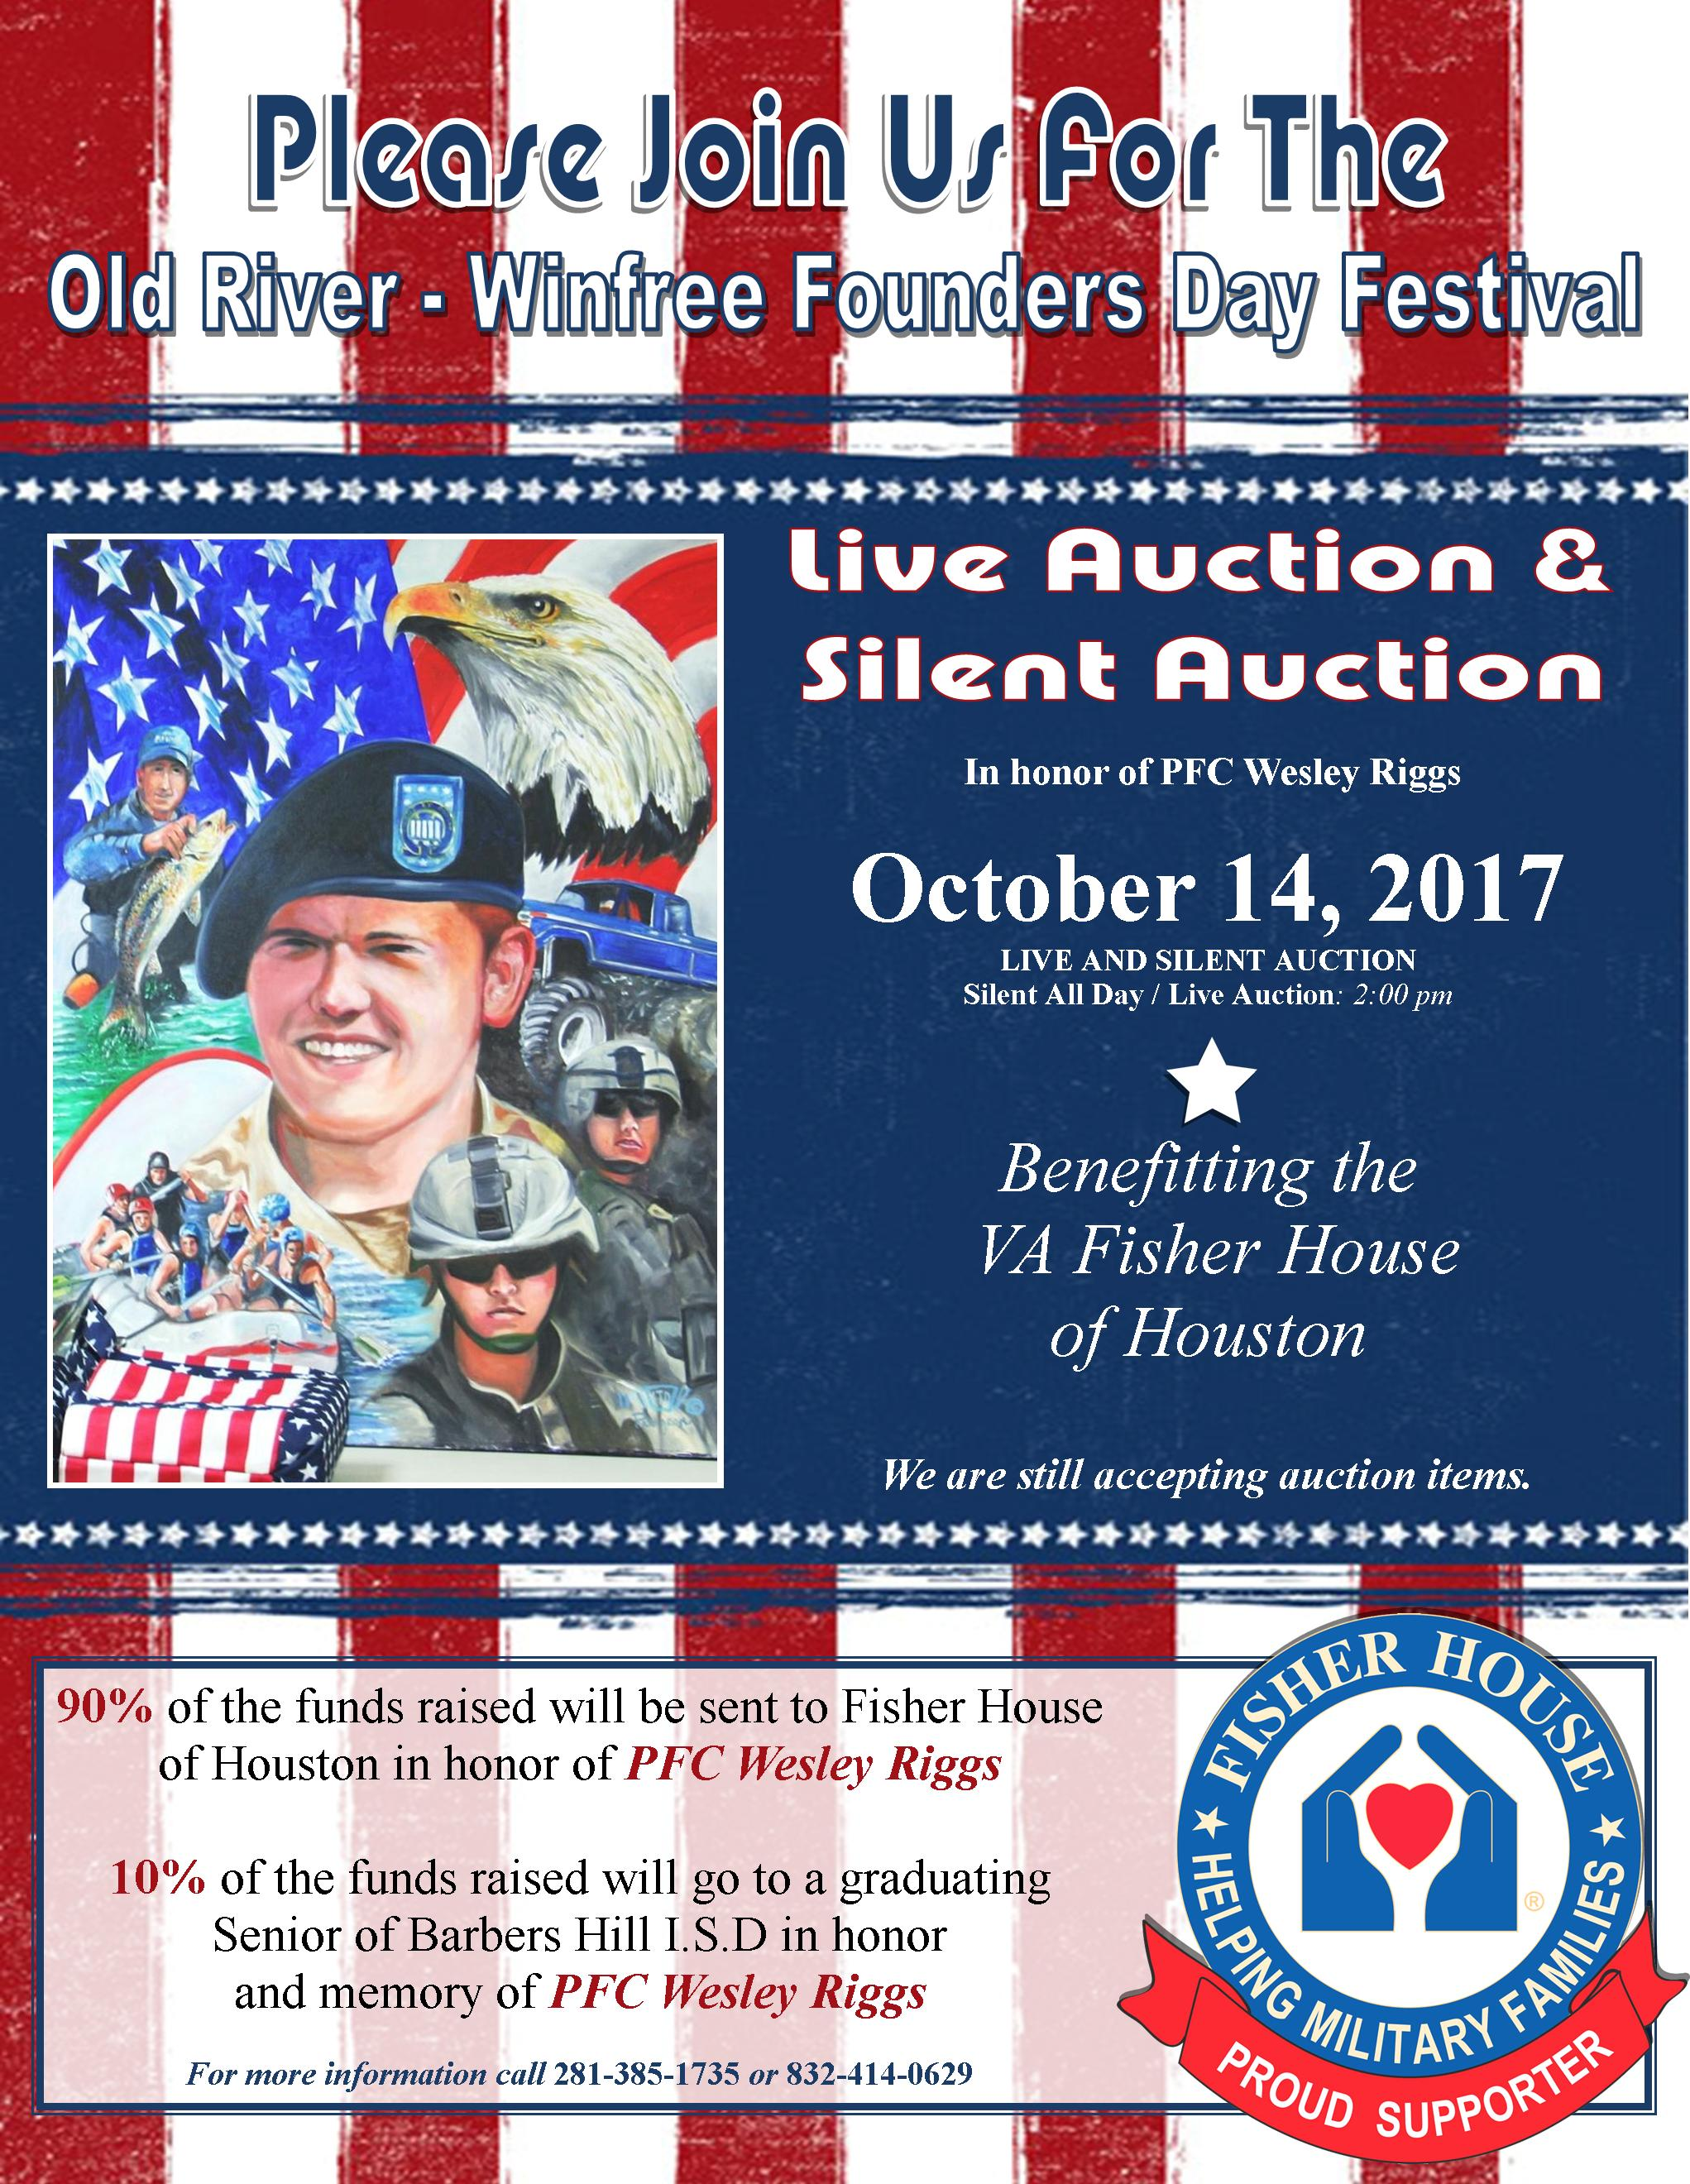 ORW Founder's Day Auction 2017 (5)